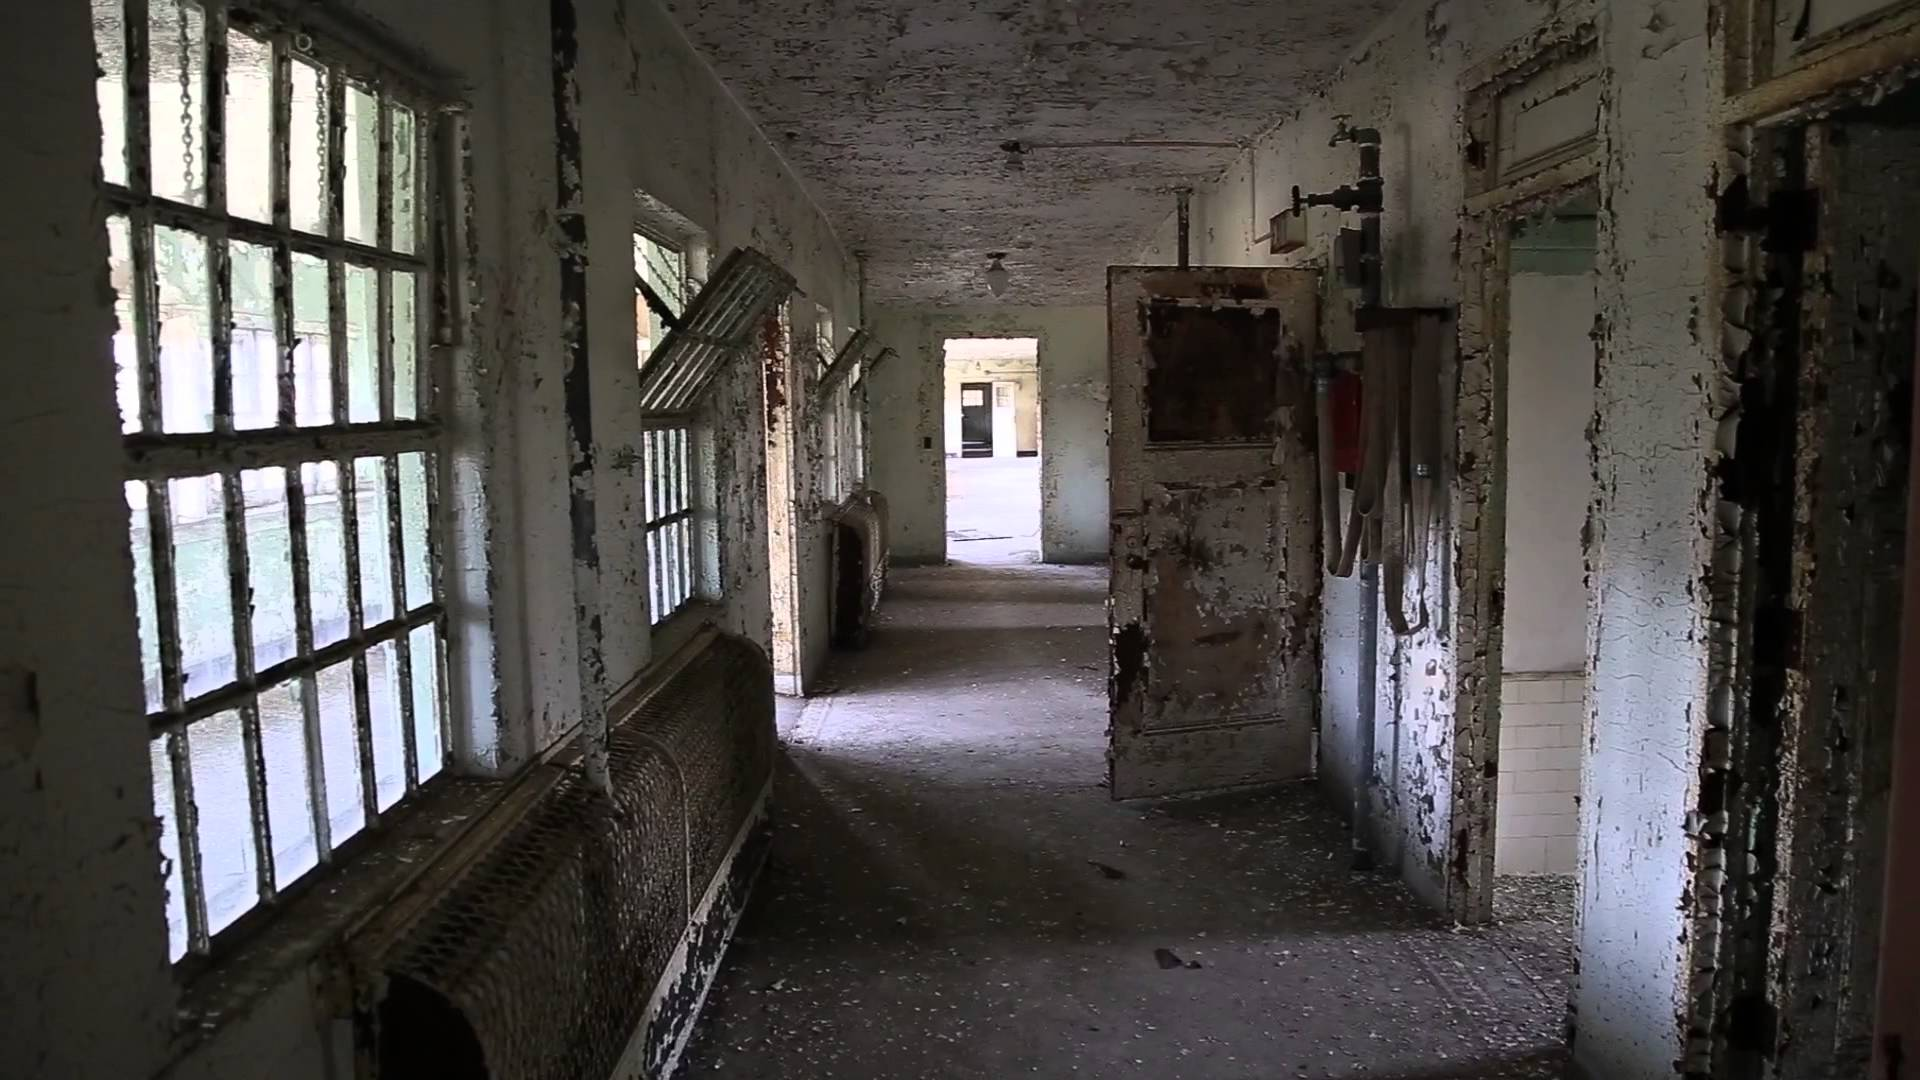 Mental hospital wallpaper